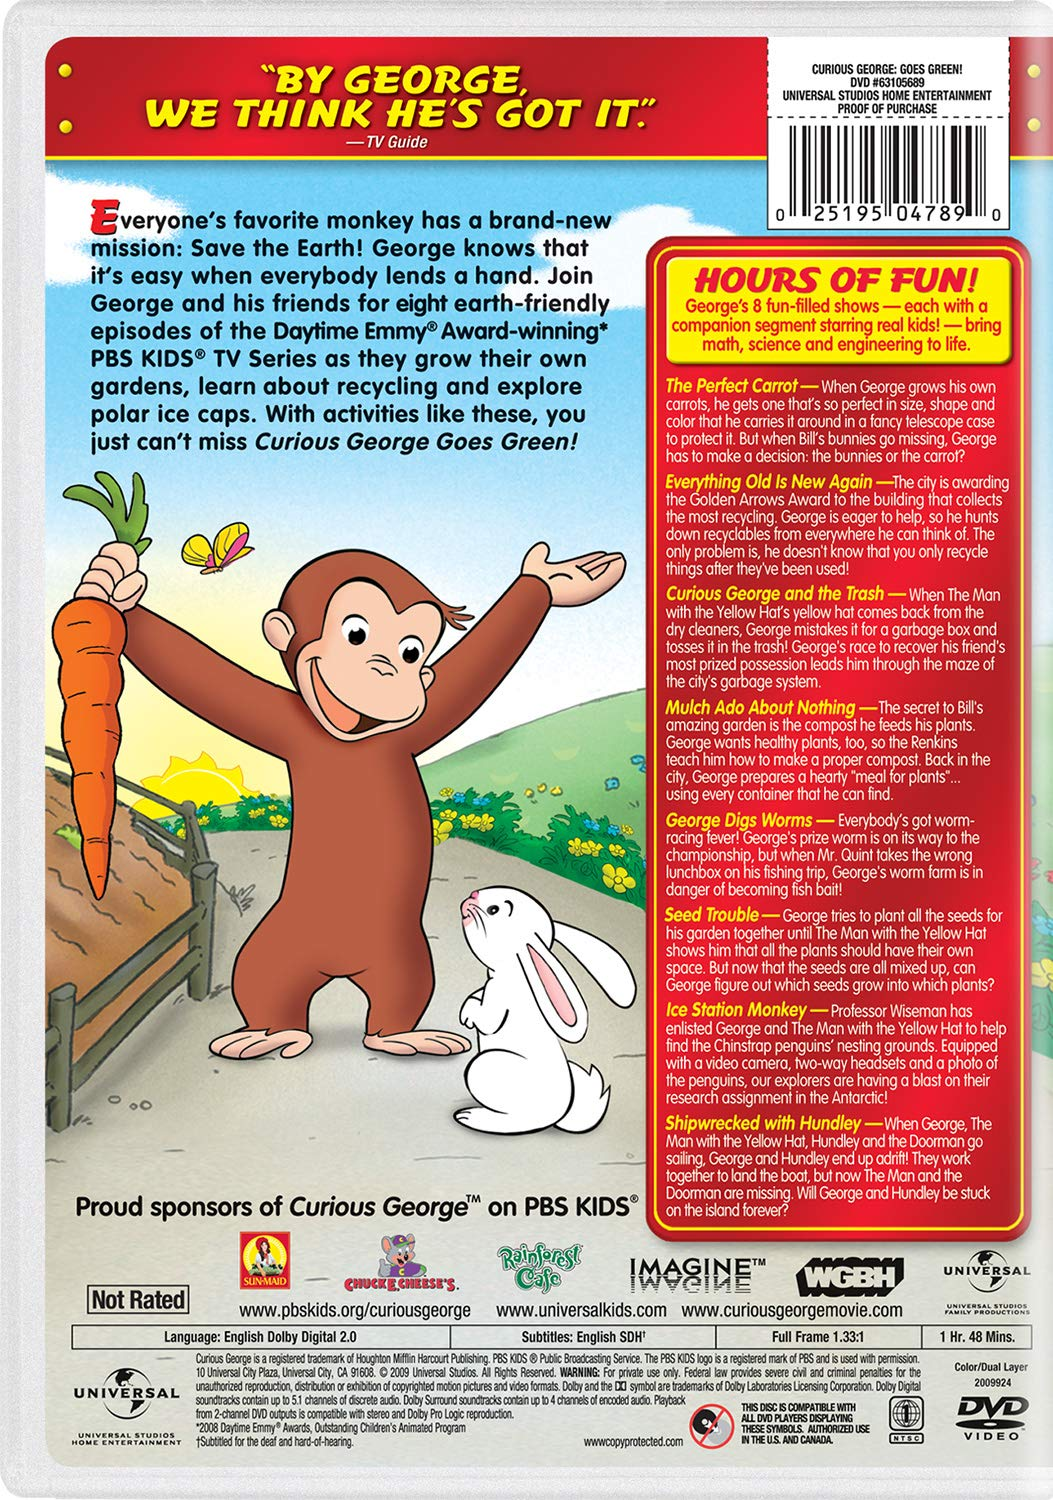 Curious George - George looks happy his tower of ice cream | 1500x1053